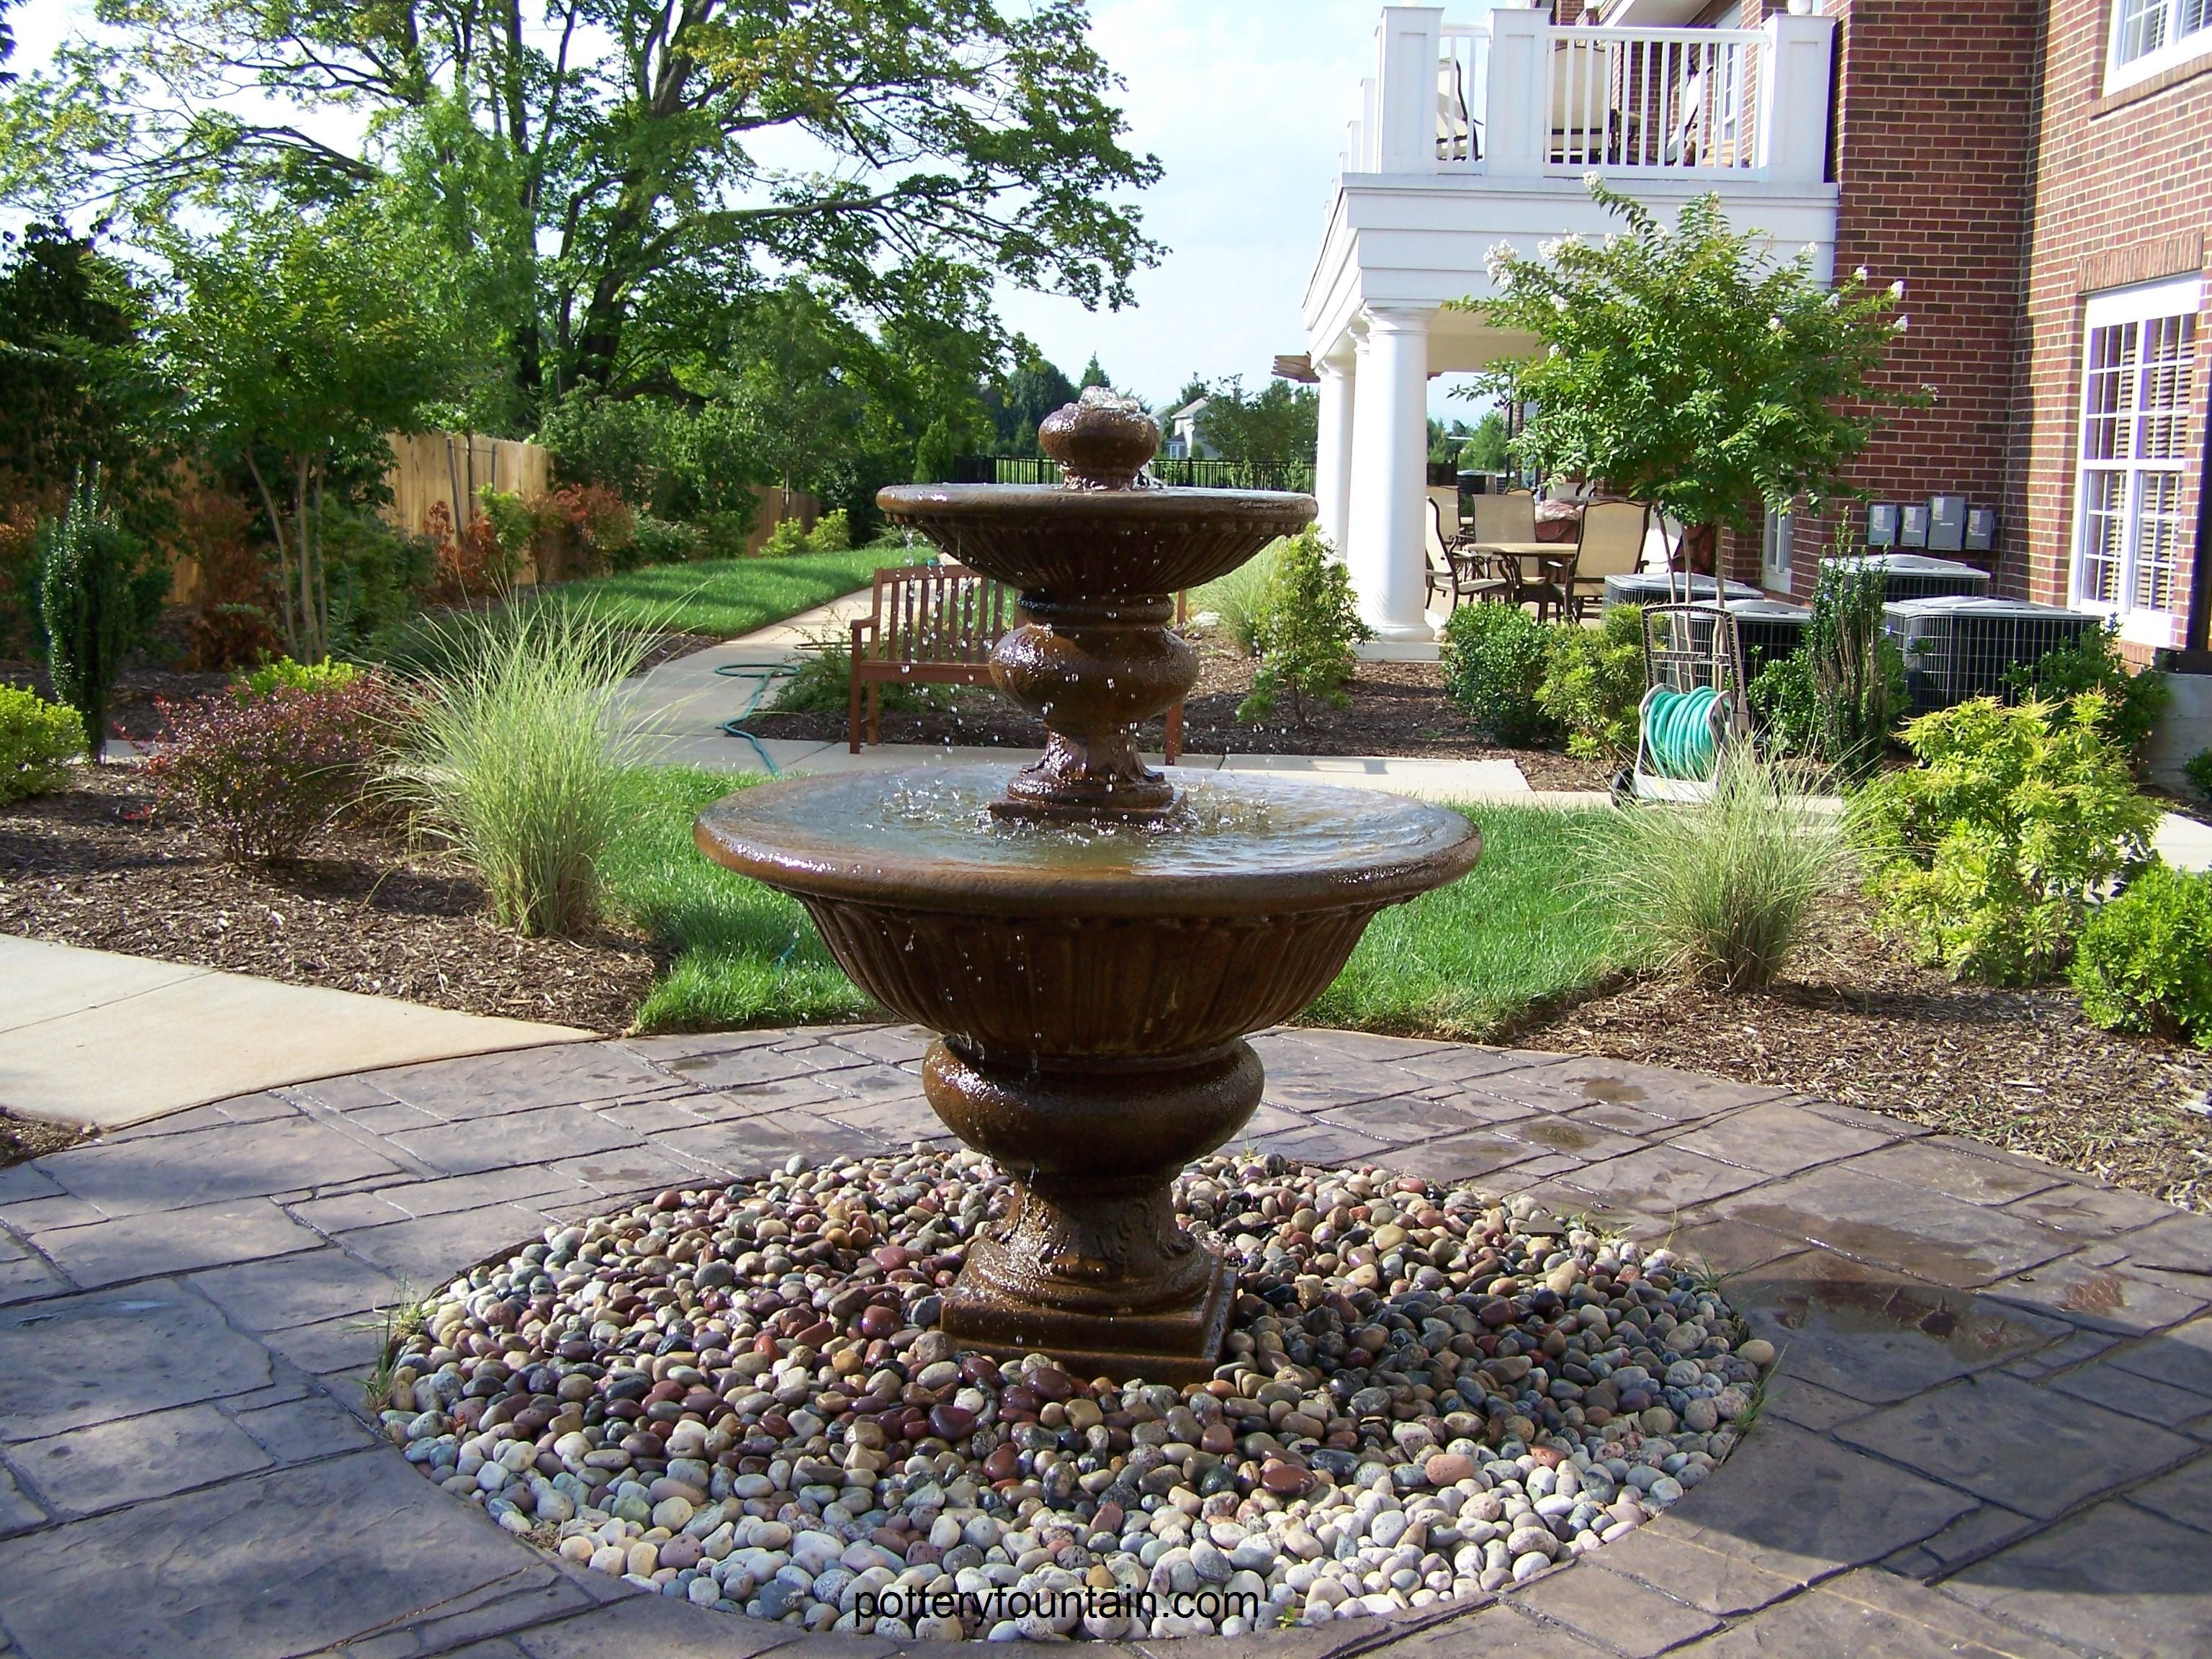 Classic Tiered Fountain On One Of Our Disappearing Fountain Basins